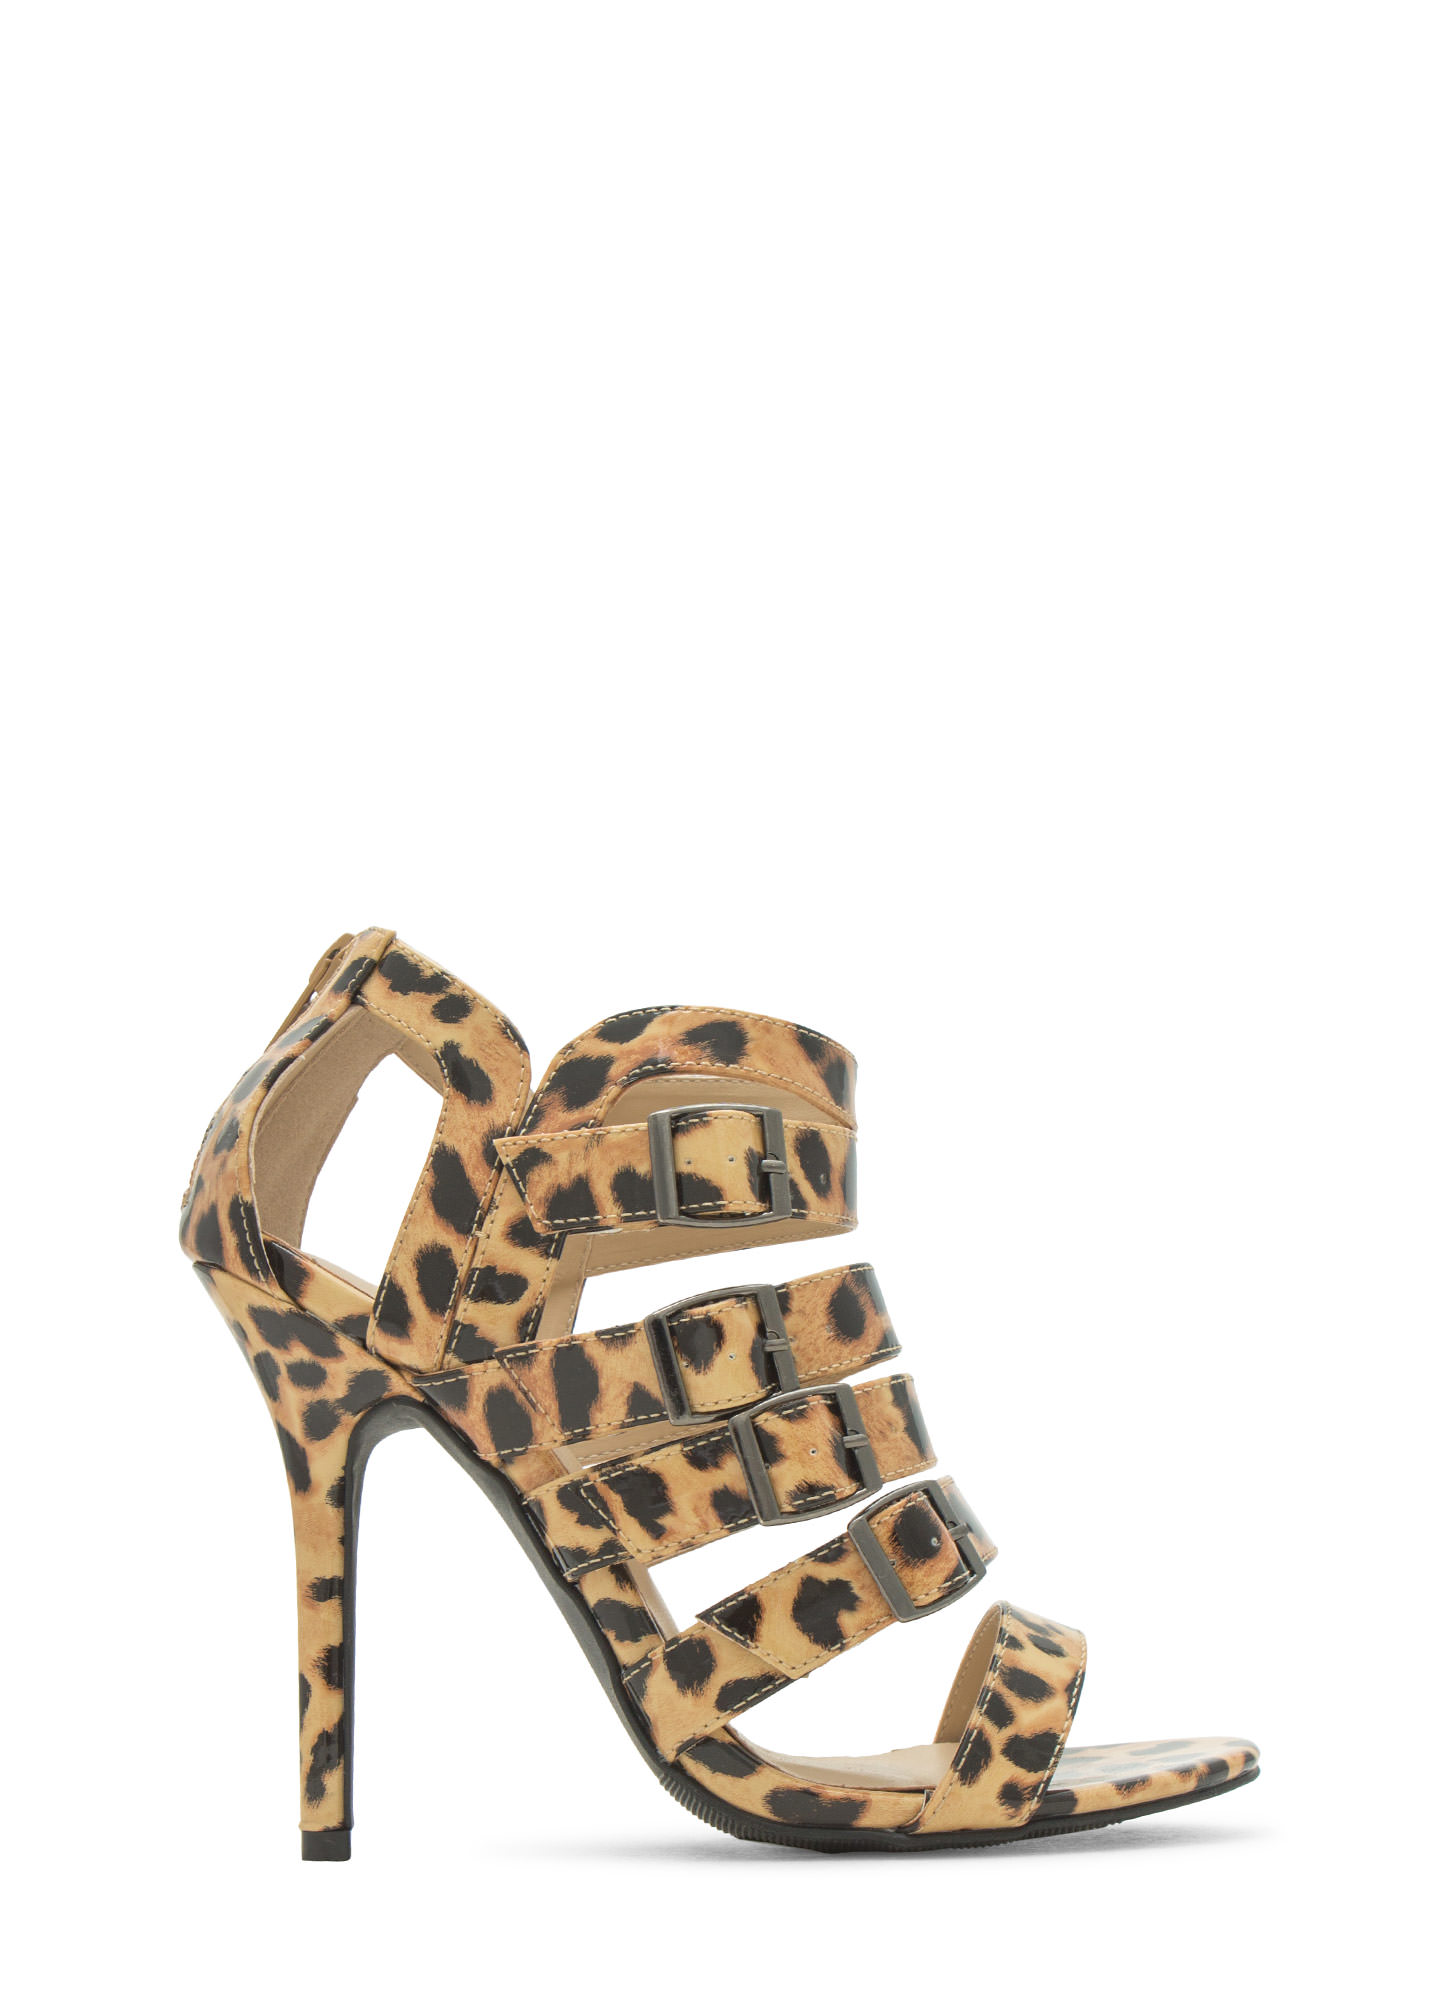 Ladder To The Top Strappy Heels LEOPARD